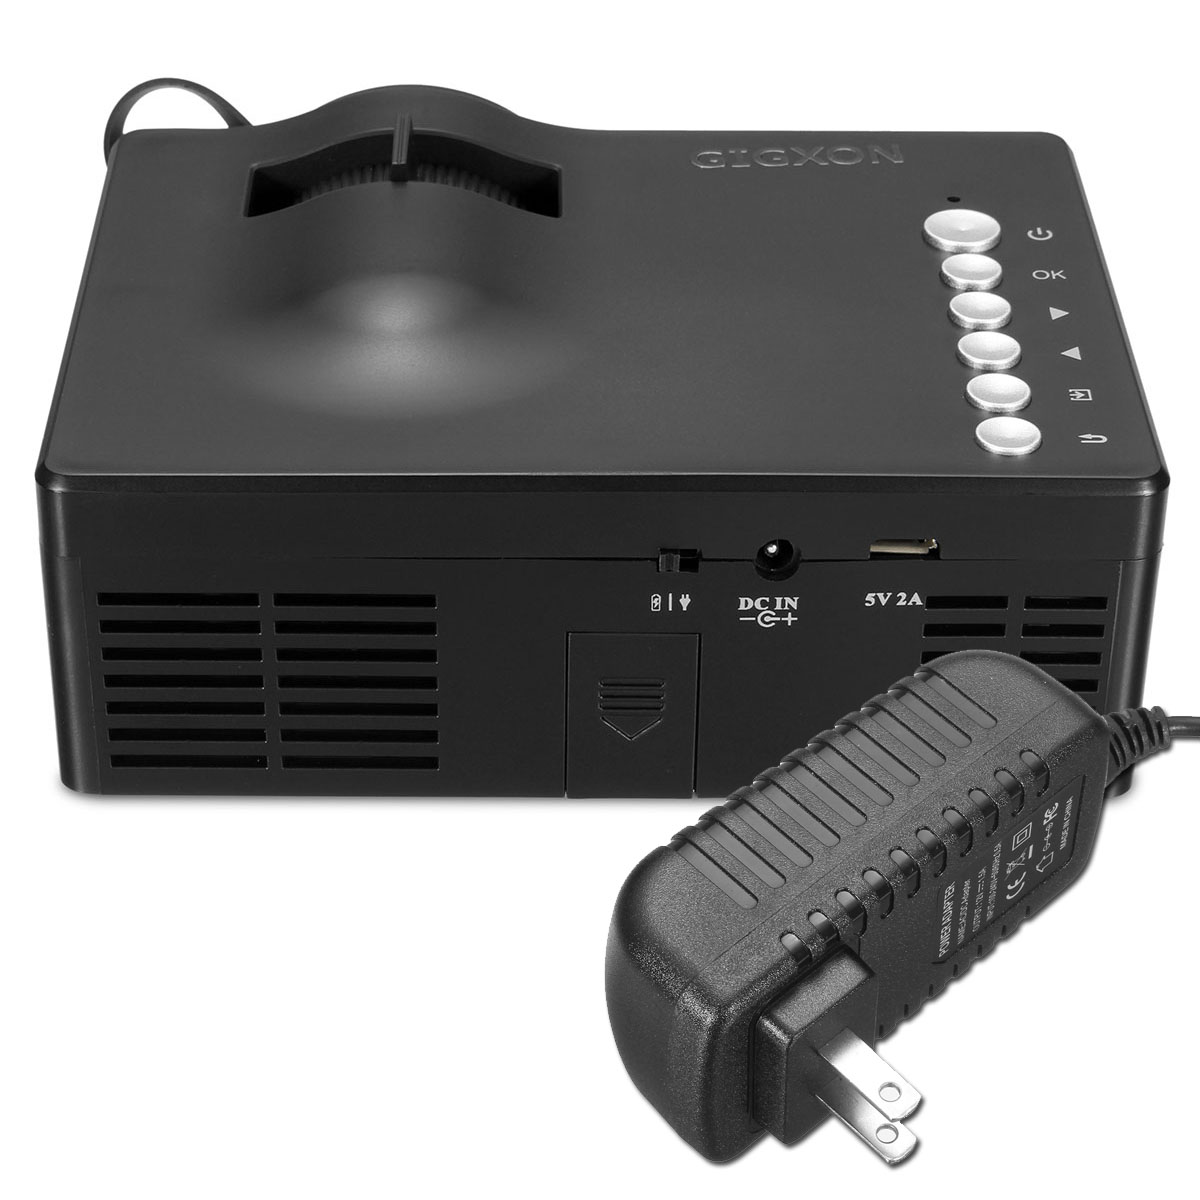 Micro mini portable full hd 1080p home theater led for Micro mini projector